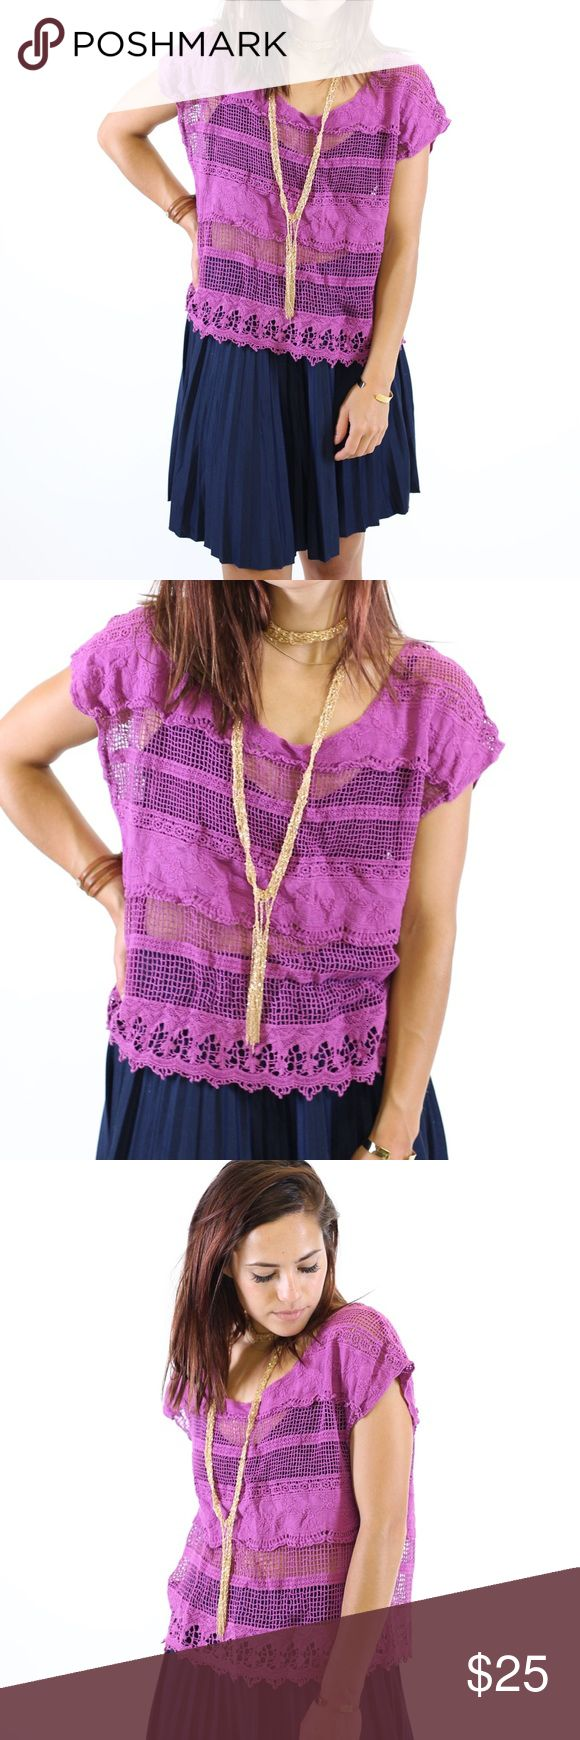 Anthropologie || Purple Crochet Slouchy Top Shop for a cause! All proceeds from the sale of this item are being donated to a non-profit organization that supports and rehabilitates women caught in sex trafficking. To learn more check out www.wipeeverytear.org.  Crochet lace top in Fuschia by Kirra for Anthropologie. Semi sheer, could be worn with bralette or a Cami. So cute. Good condition, true to size. Anthropologie Tops Blouses